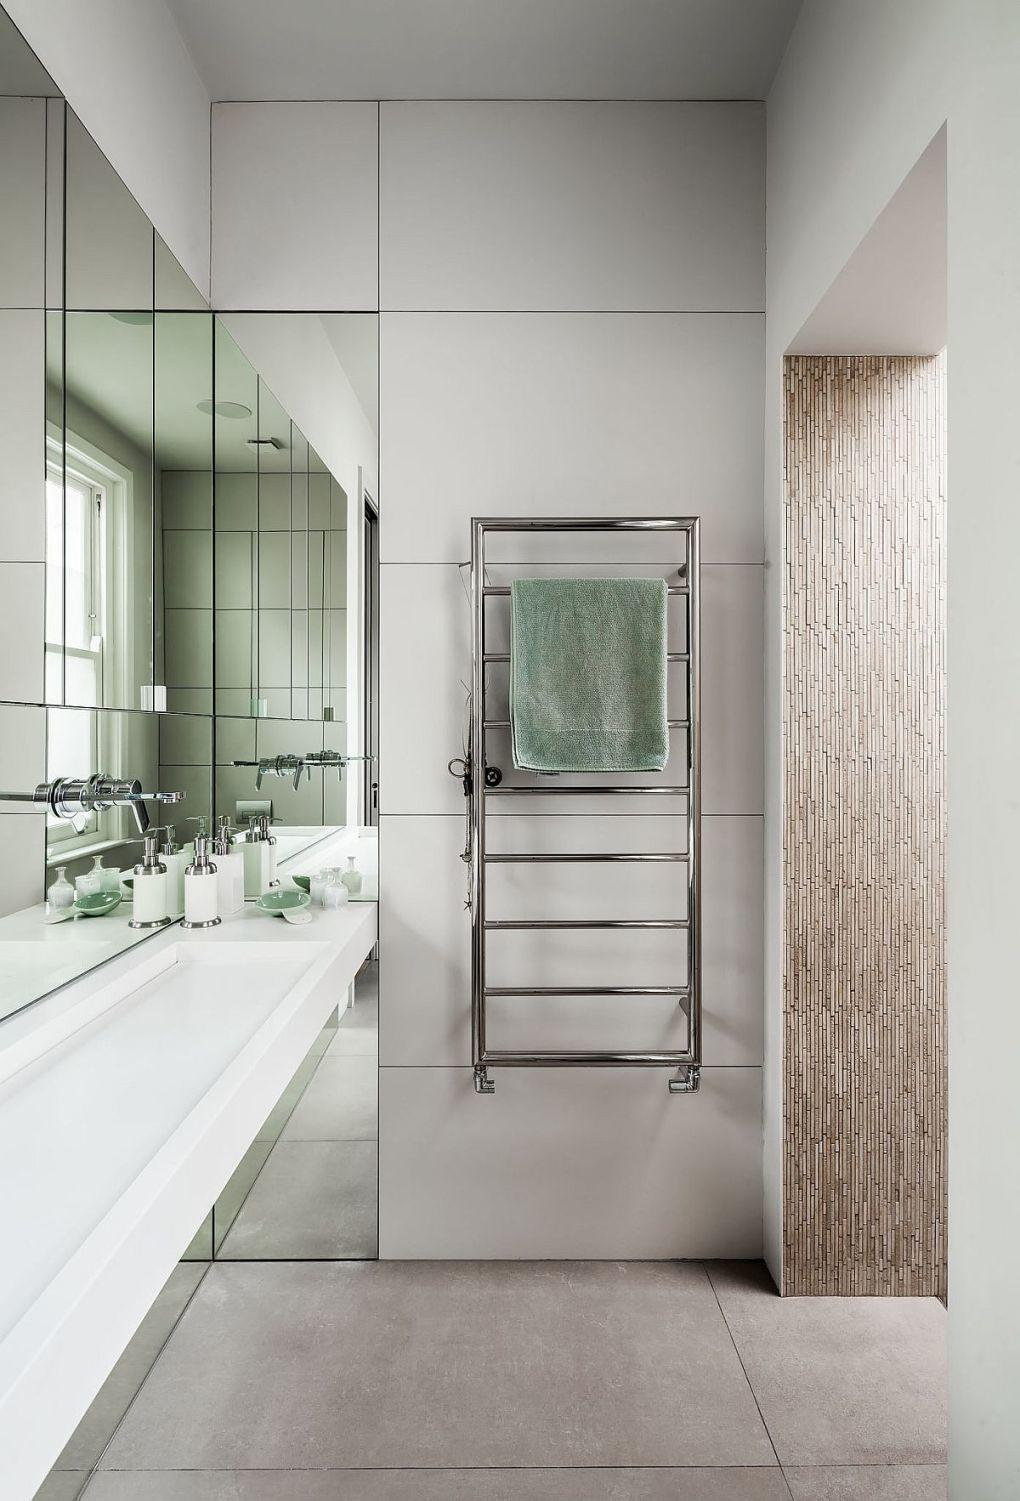 Eski Ev Yenileme Fikirleri | Refined bathroom in white with a steel towel rack 1